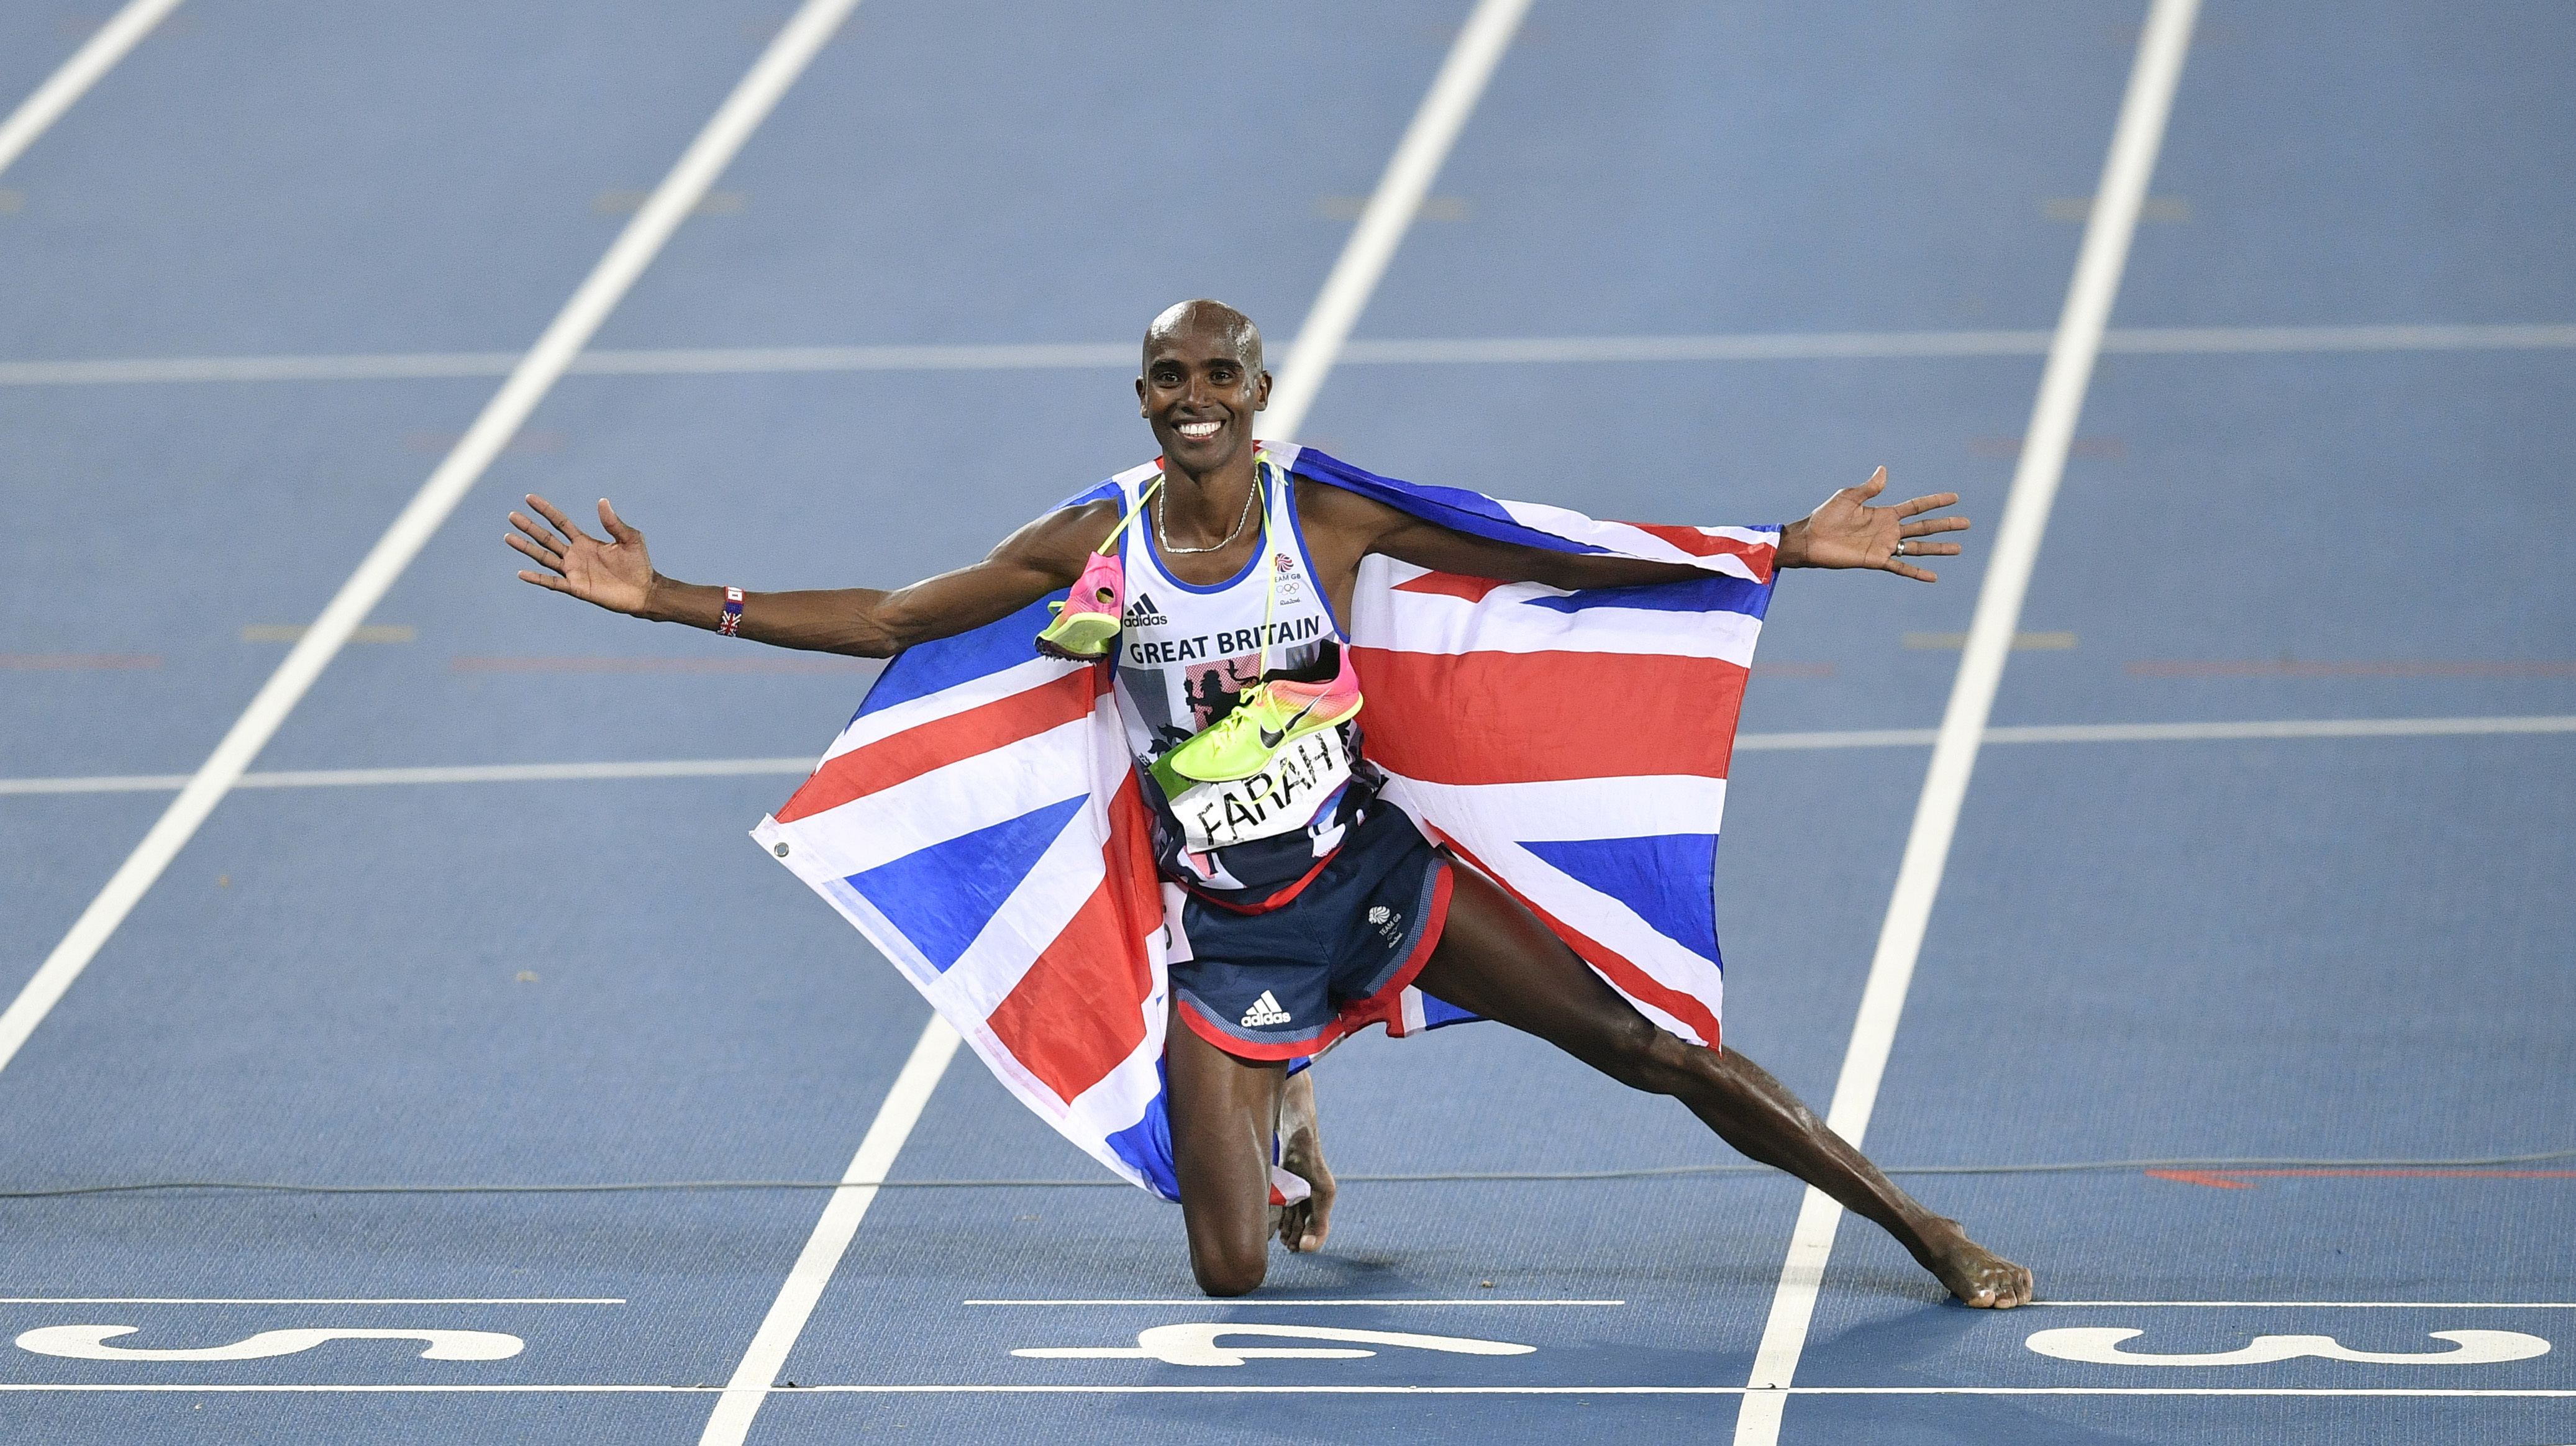 Britain's Mo Farah celebrates winning the gold medal in the men's 5000-meter final during the athletics competitions of the 2016 Summer Olympics at the Olympic stadium in Rio de Janeiro, Brazil, Saturday, Aug. 20, 2016. (AP Photo/Martin Meissner)